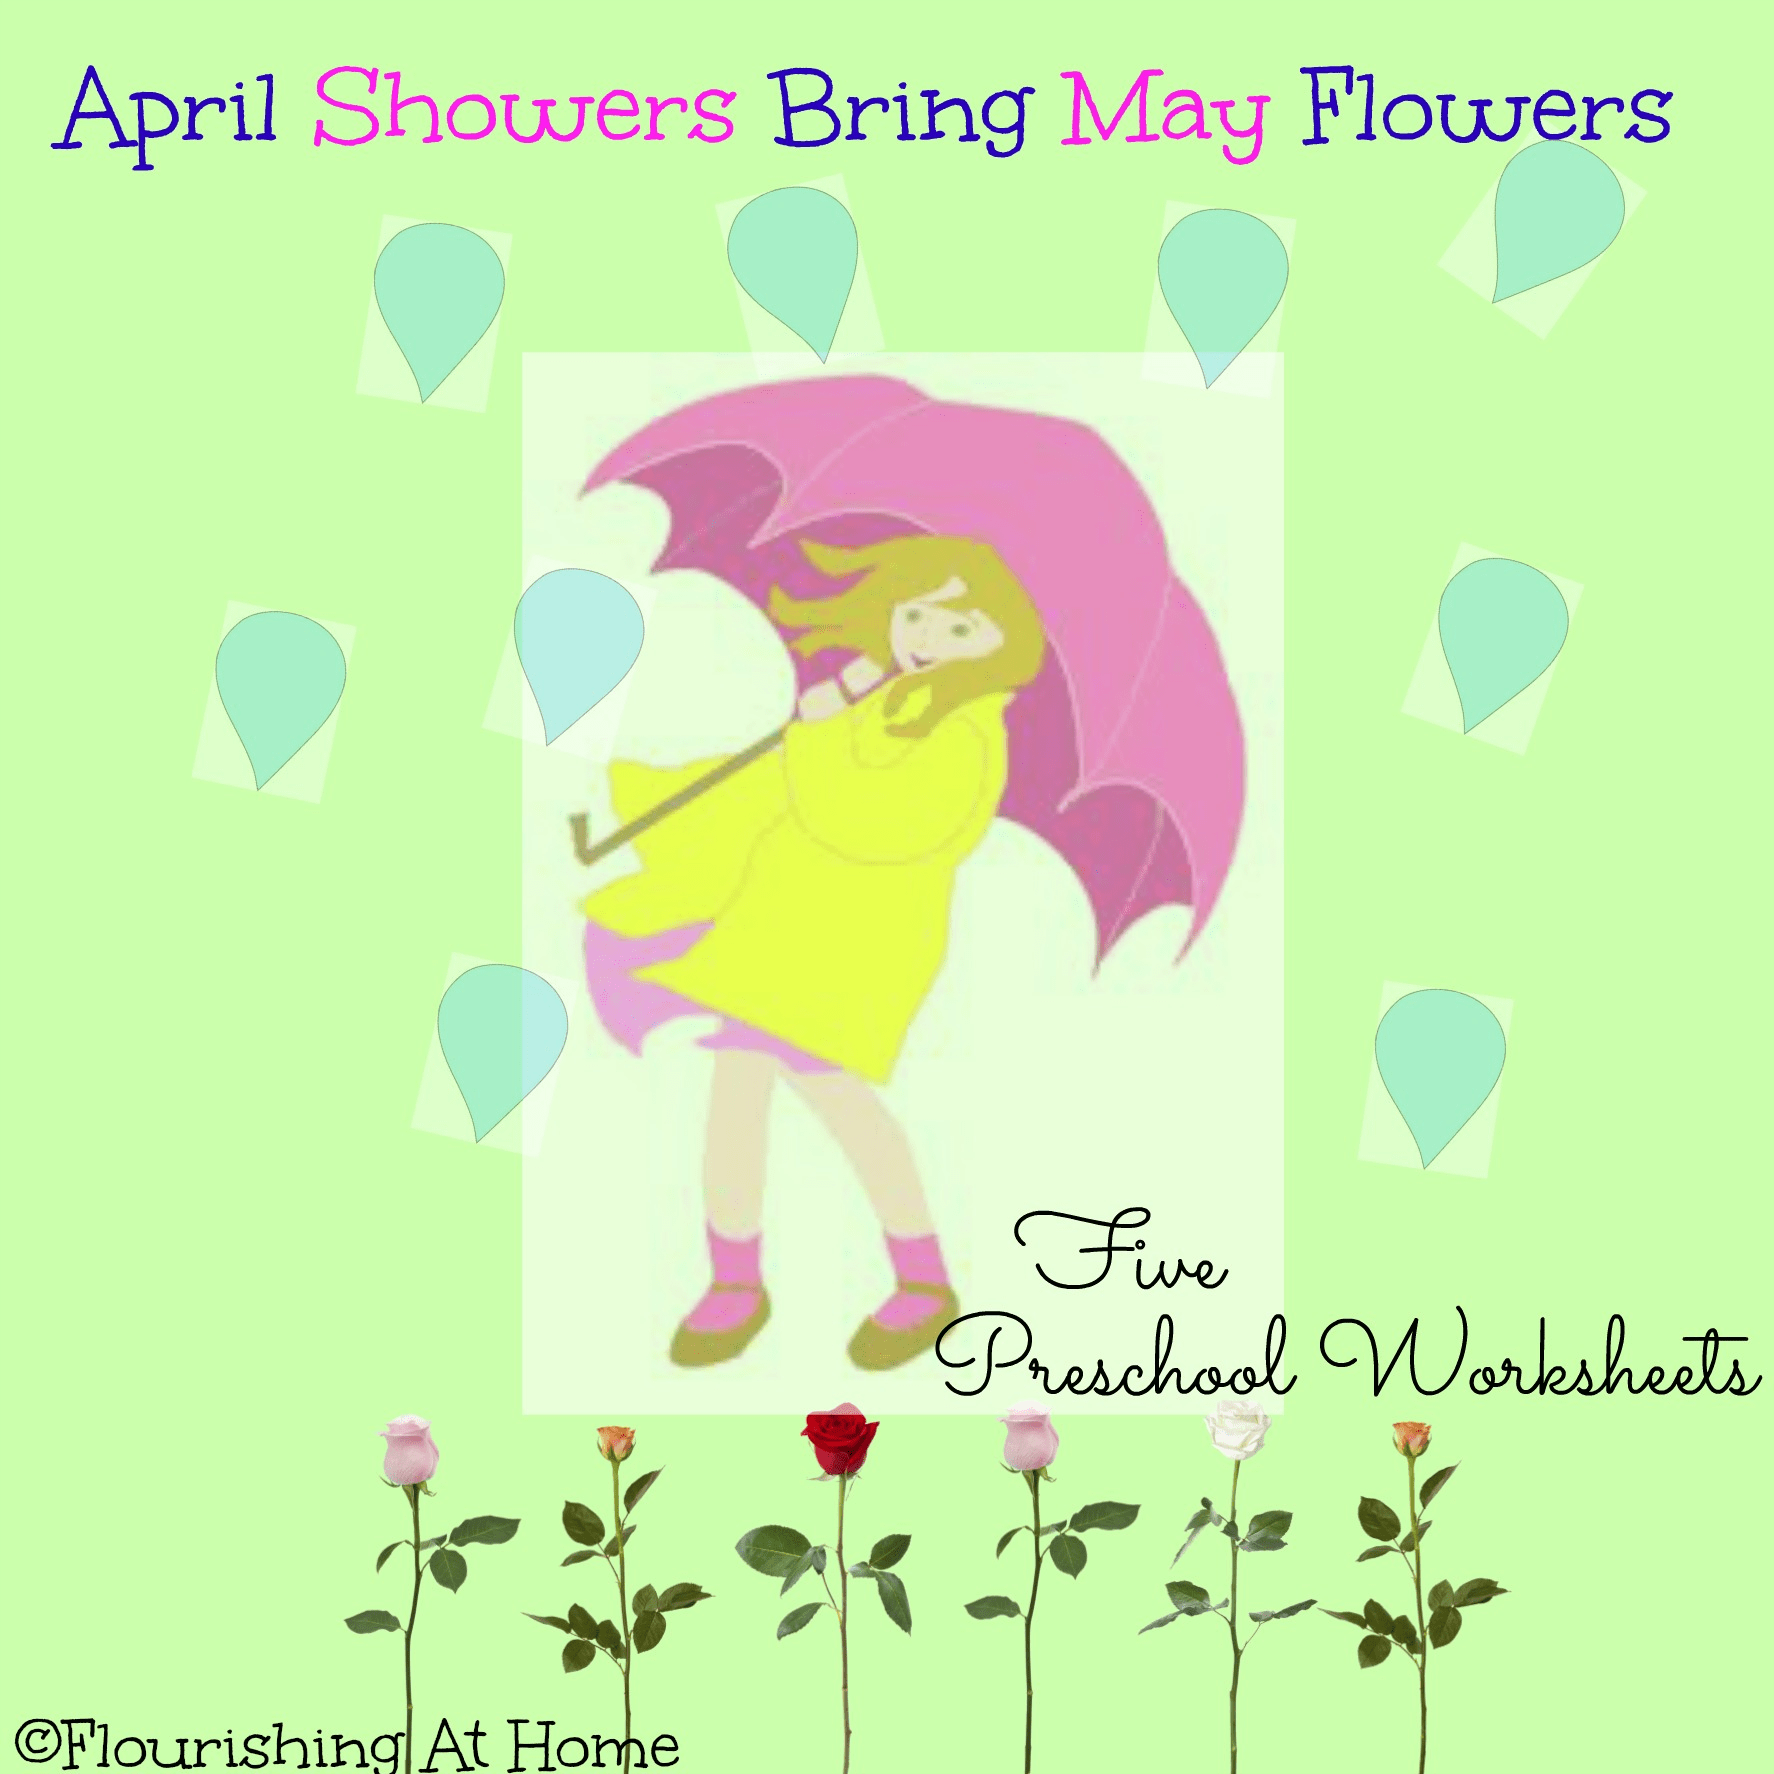 April Showers Bring May Flowers Preschool Worksheets – At Home With Zan